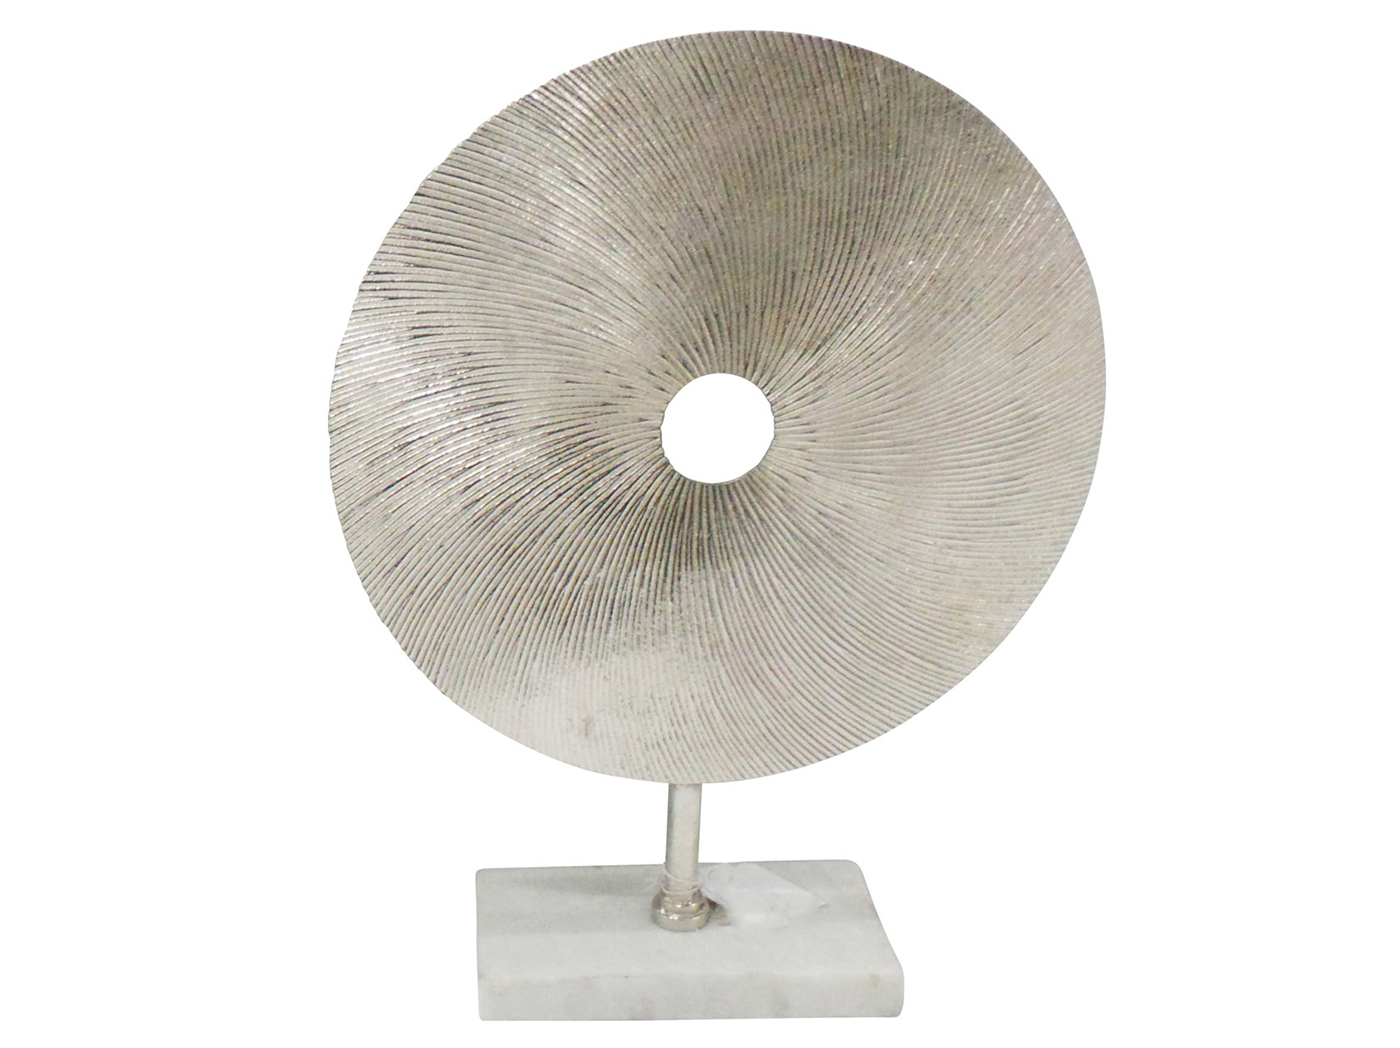 "Silver Textures Disc Sculpture on Stand 14X4X18""H"